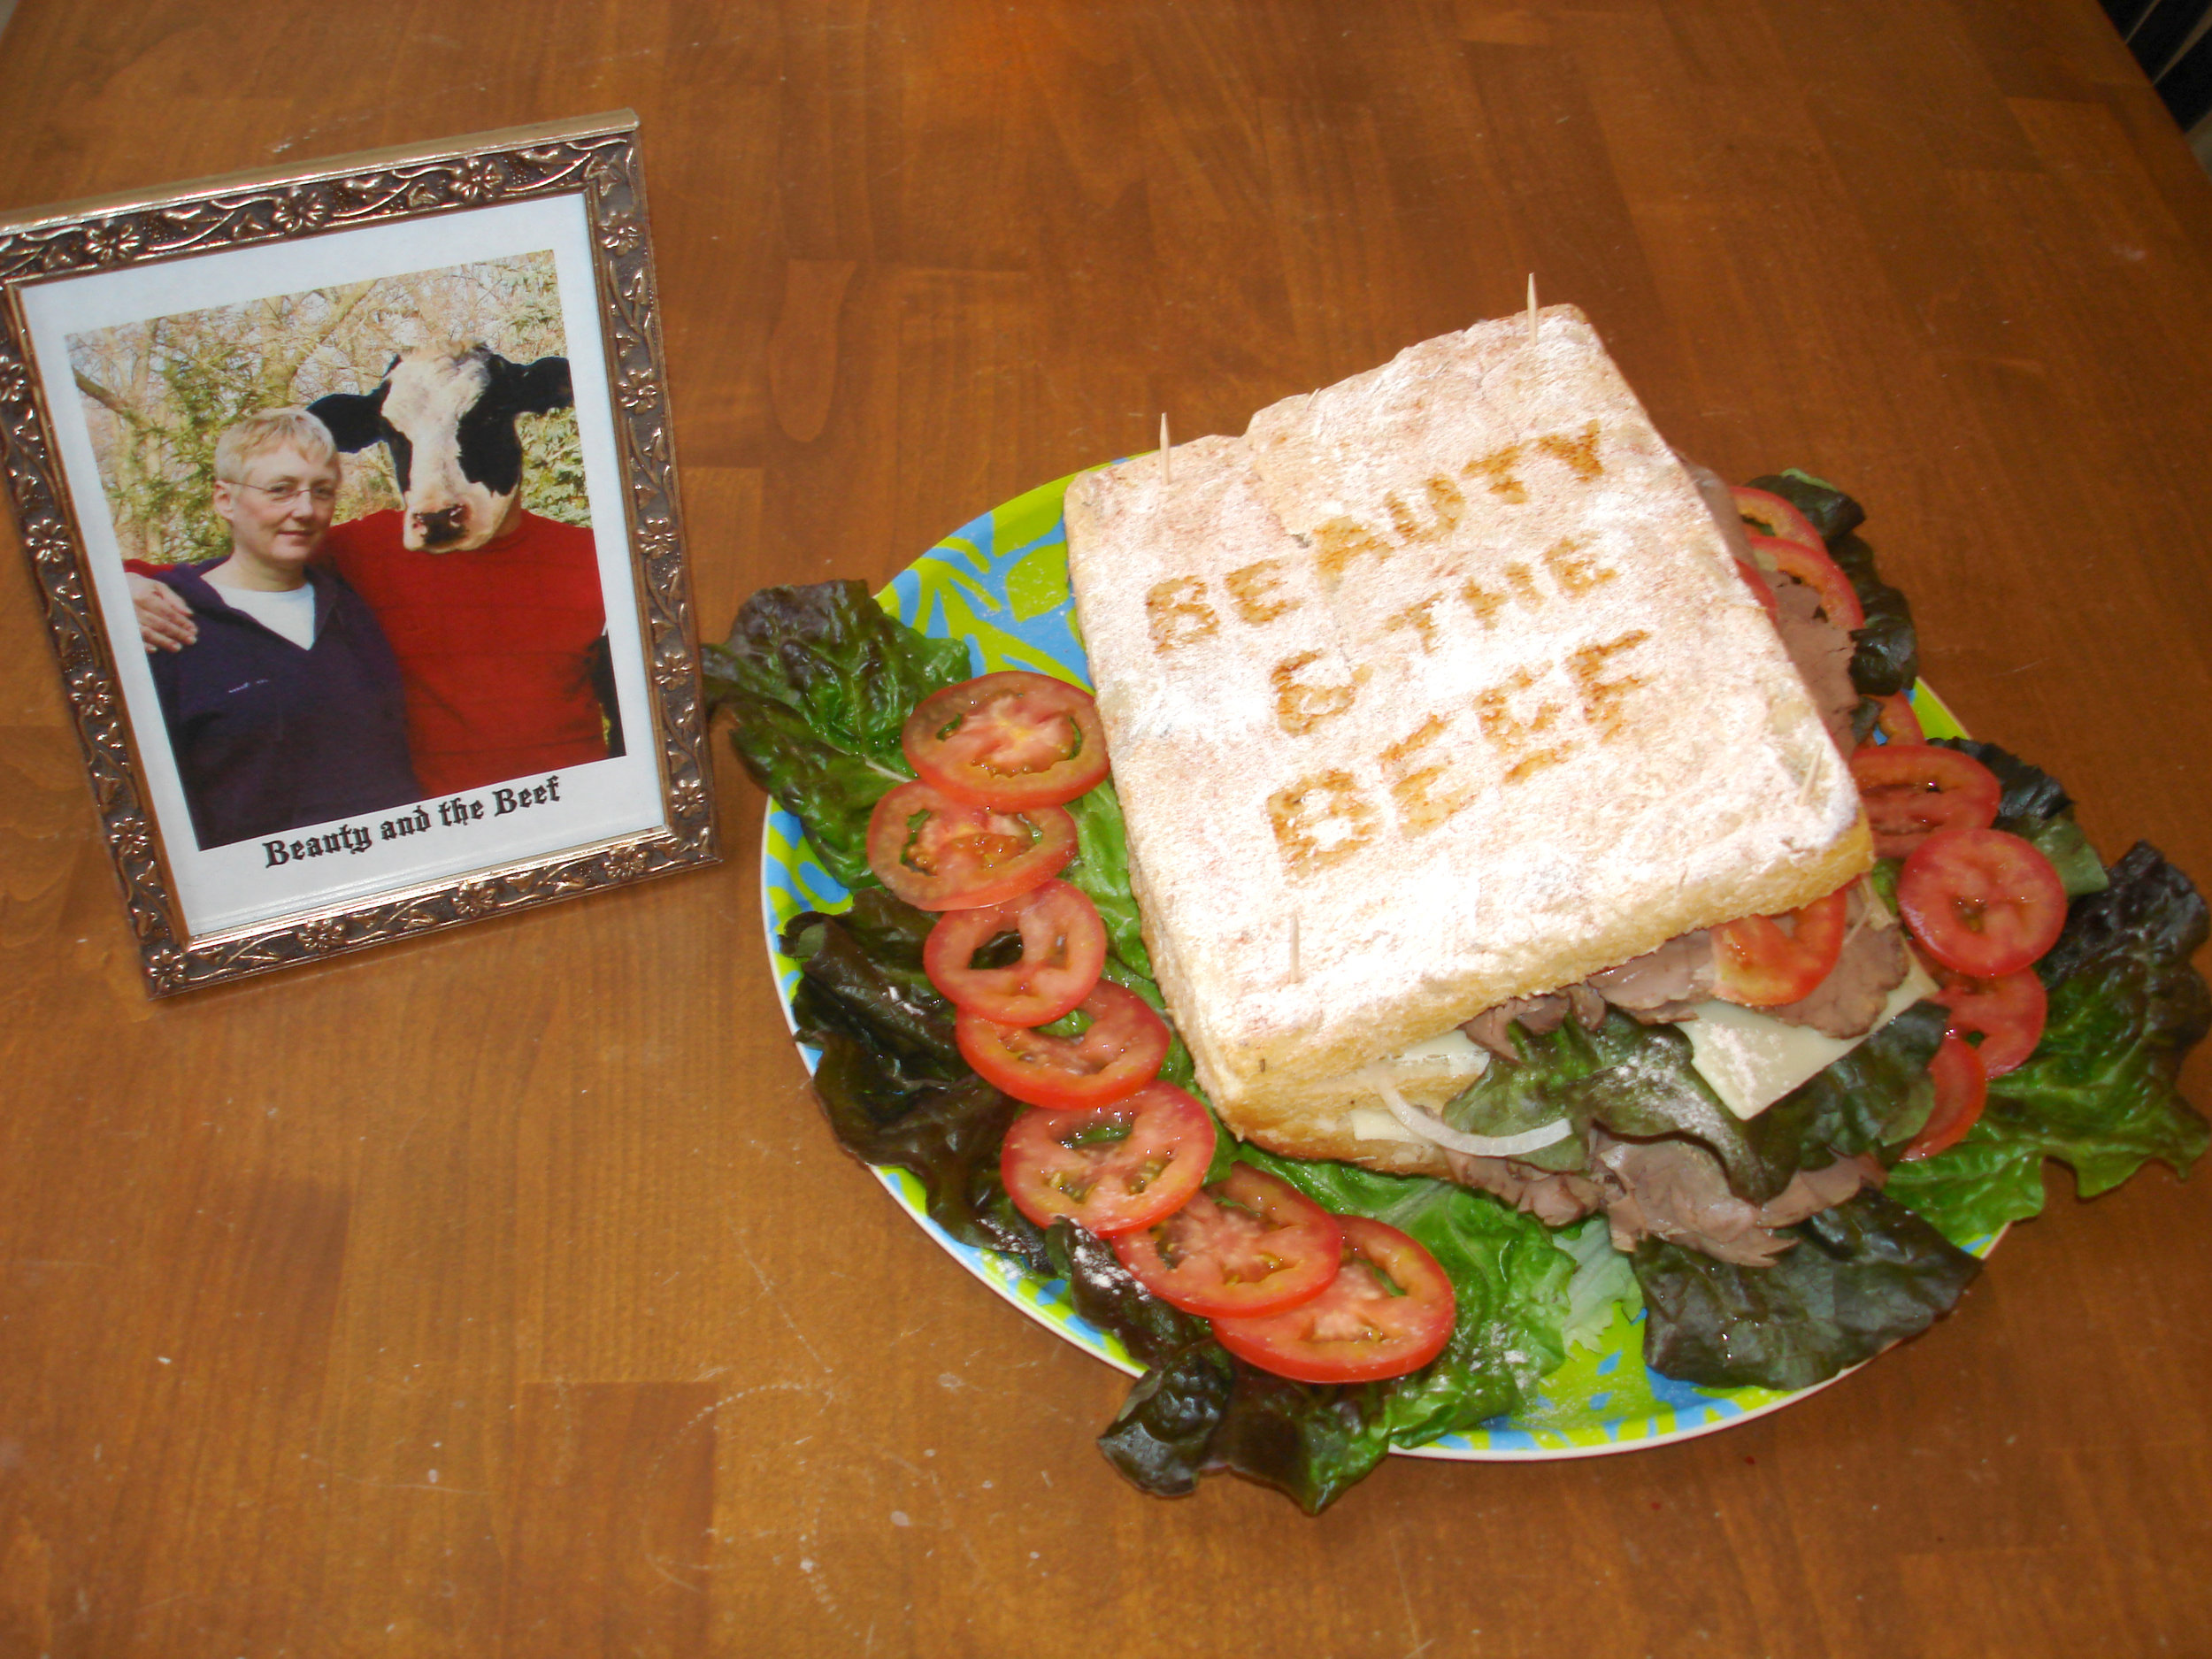 """Beauty and the Beef"" by Liz Faust; 2007 Edible Book Festivall entry"